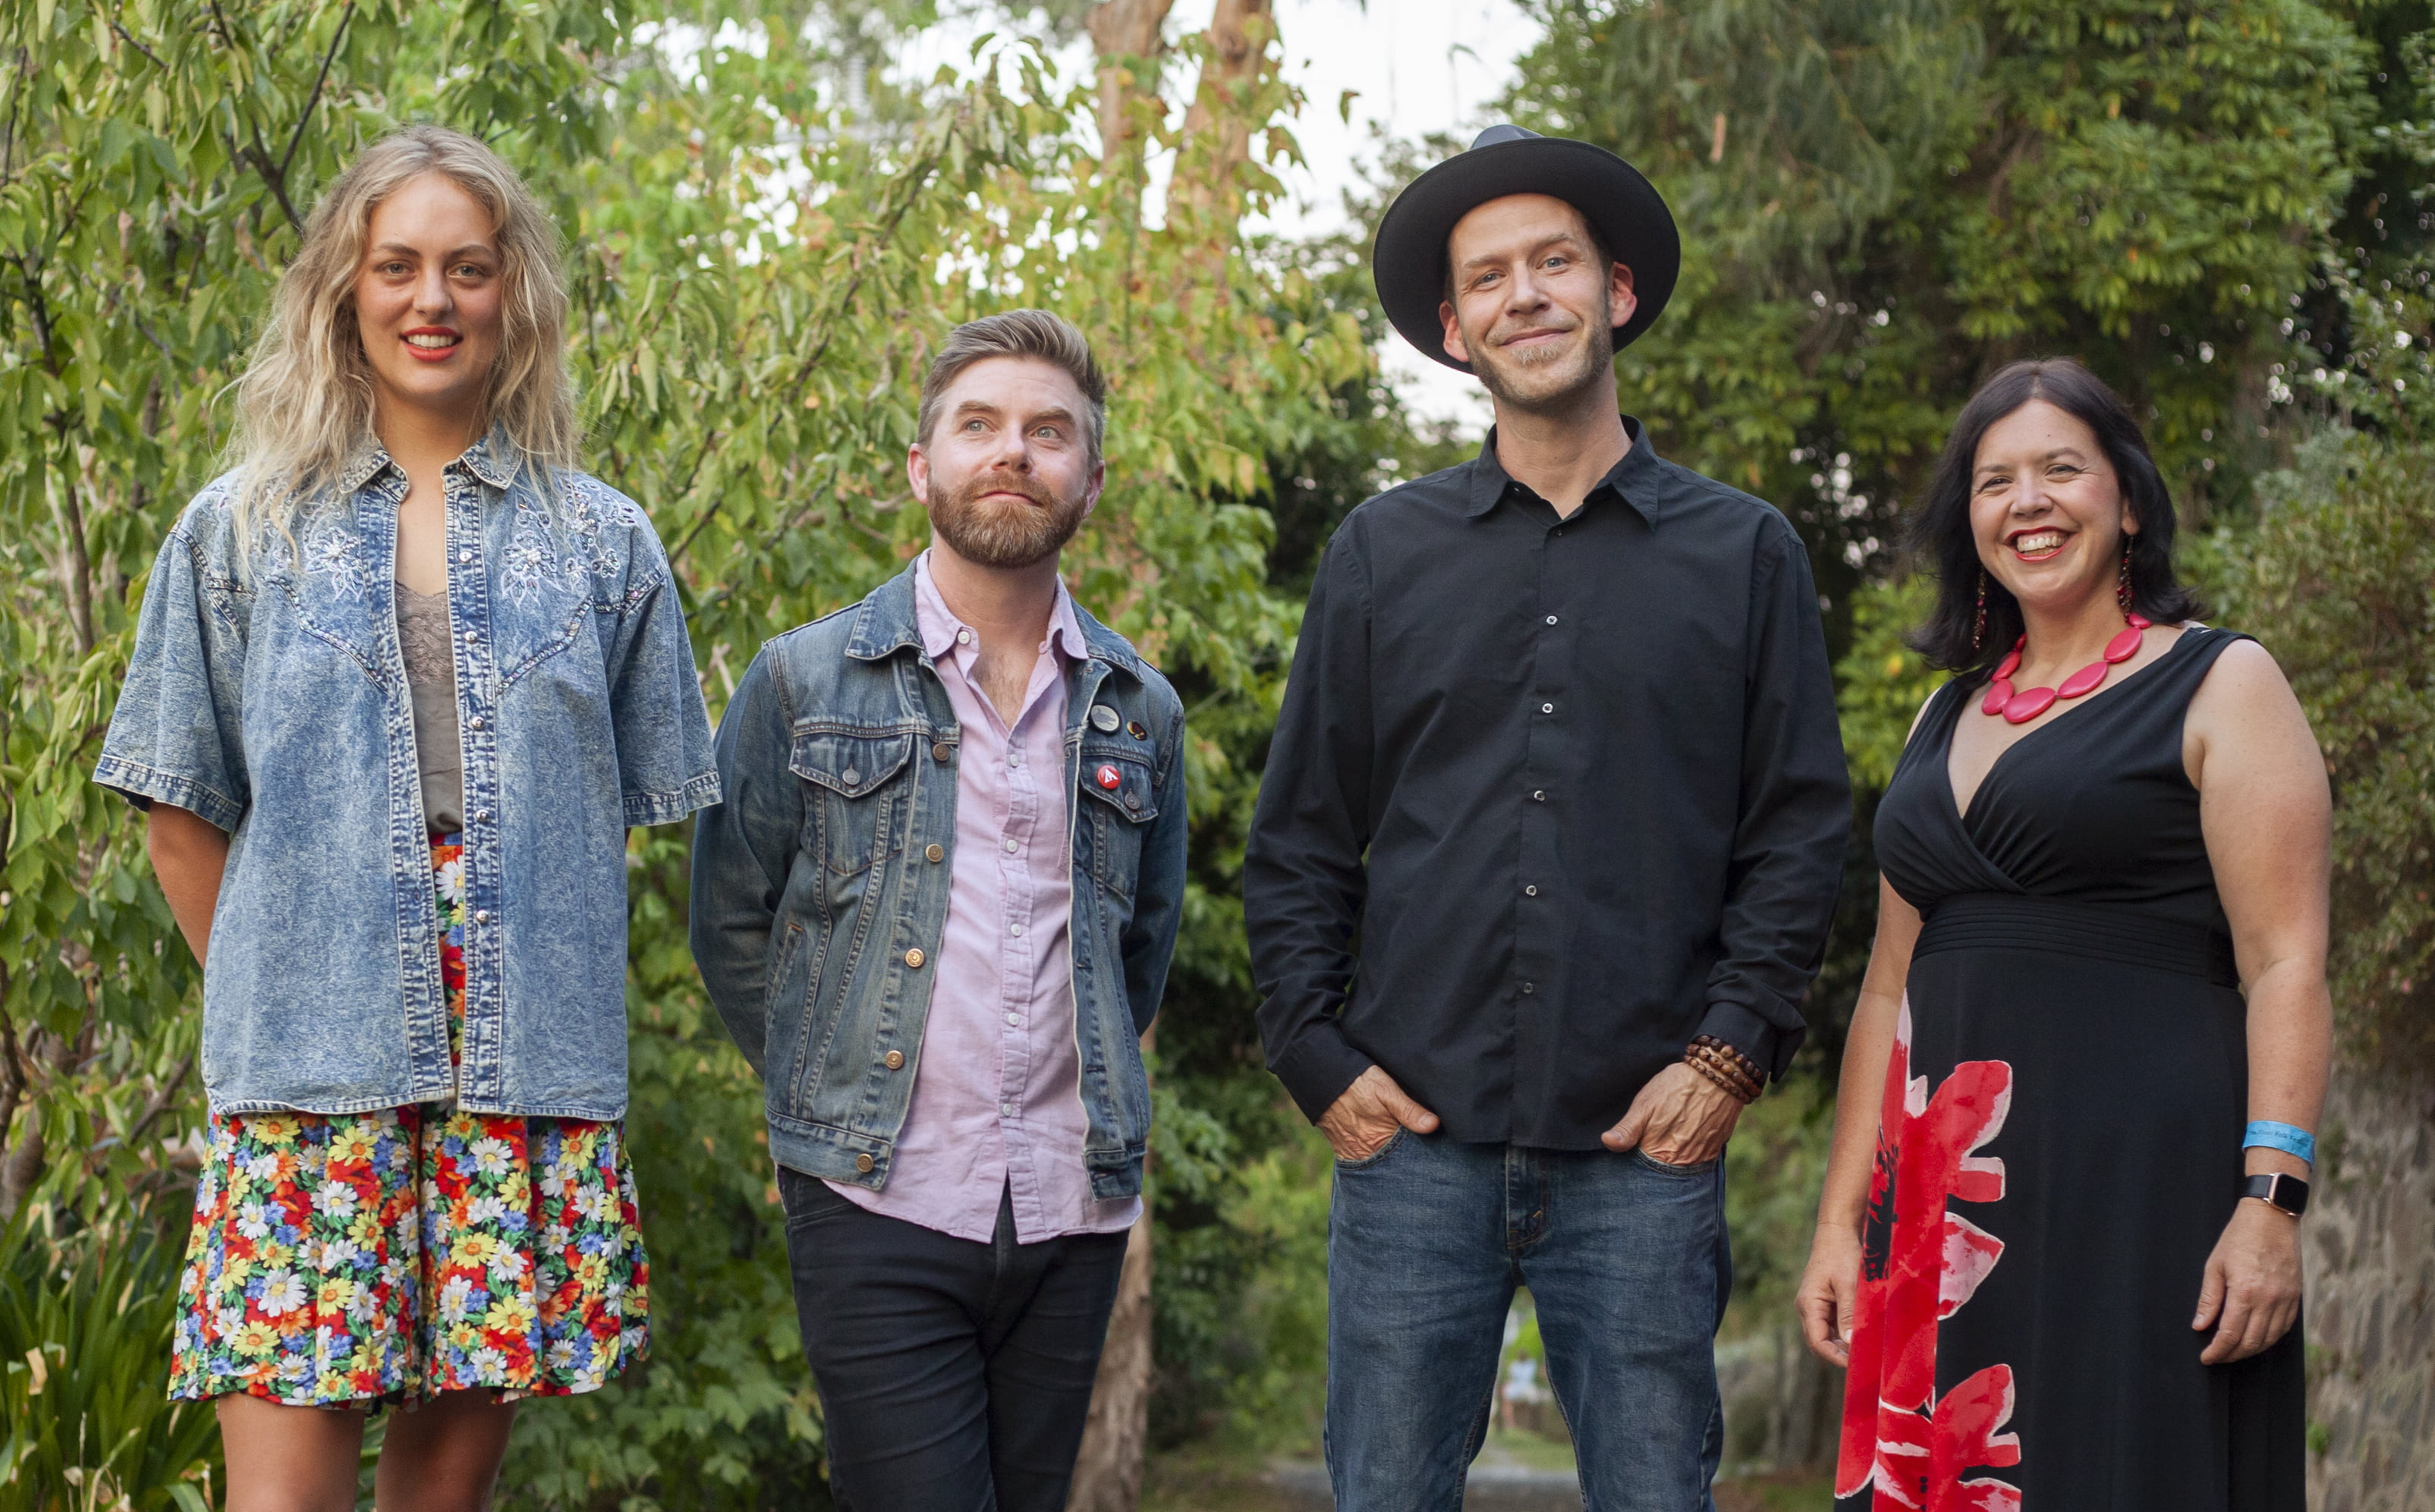 Scott Cook & the She'll Be Rights – CAN